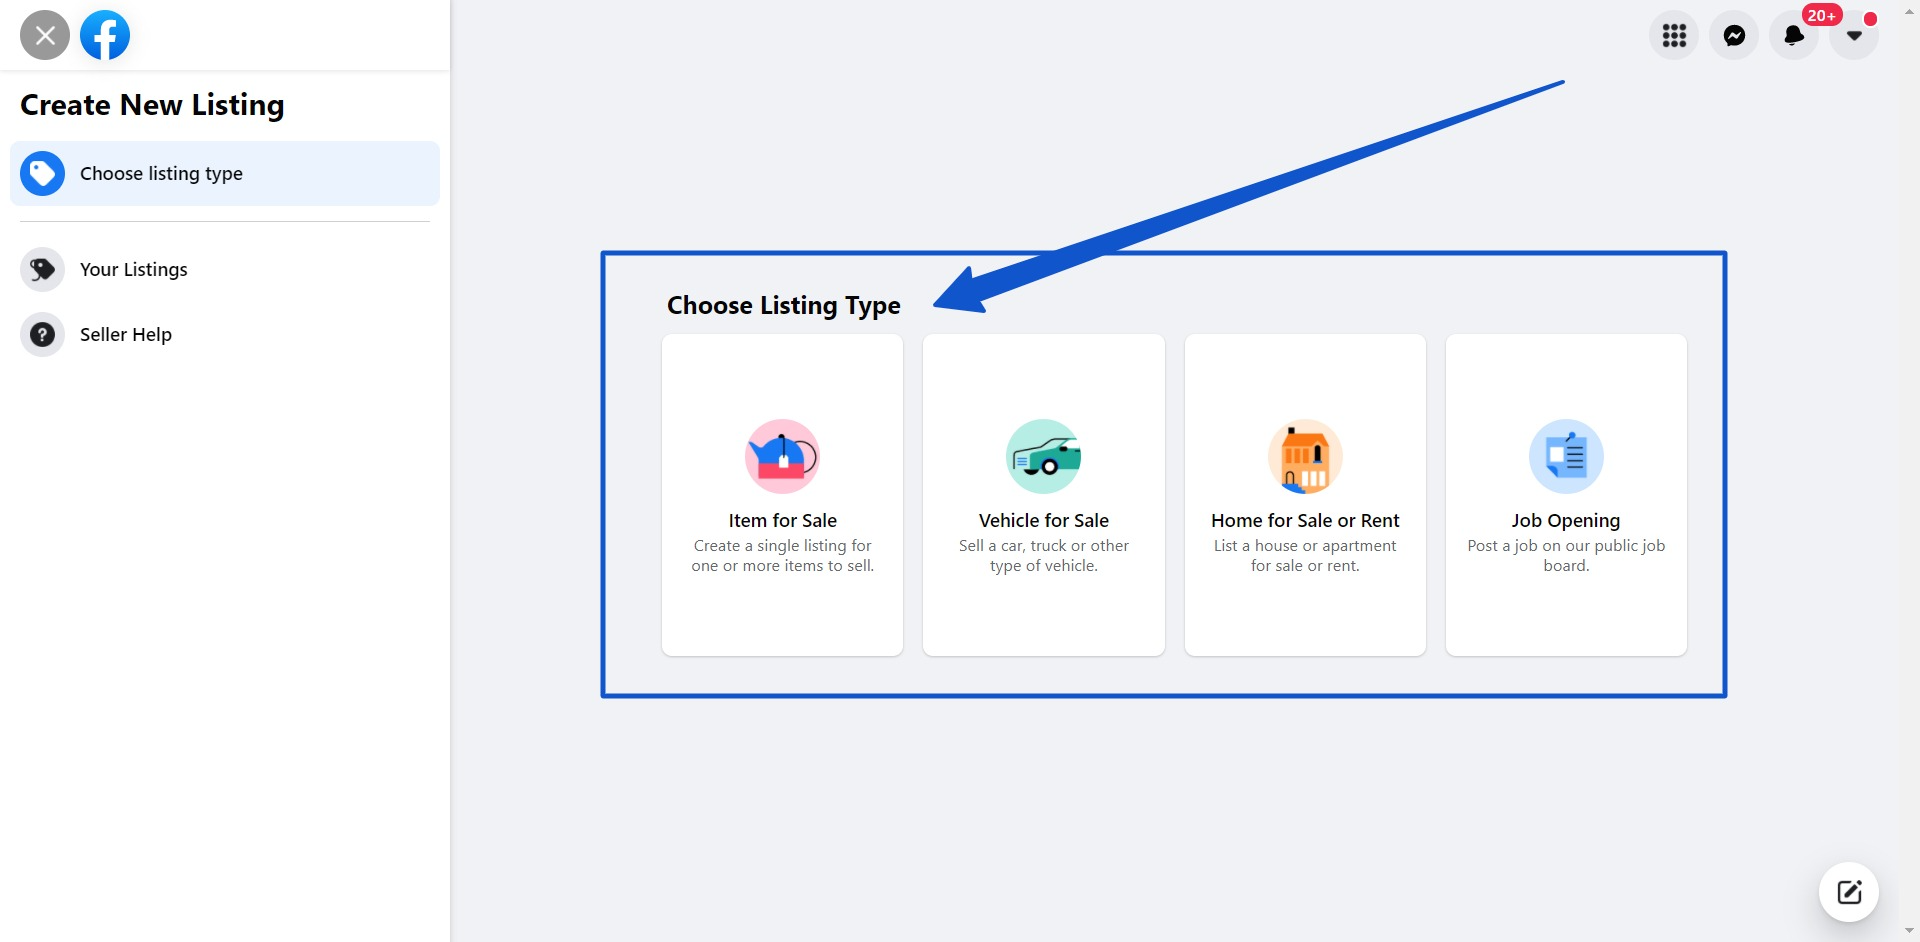 Choose the type of listing